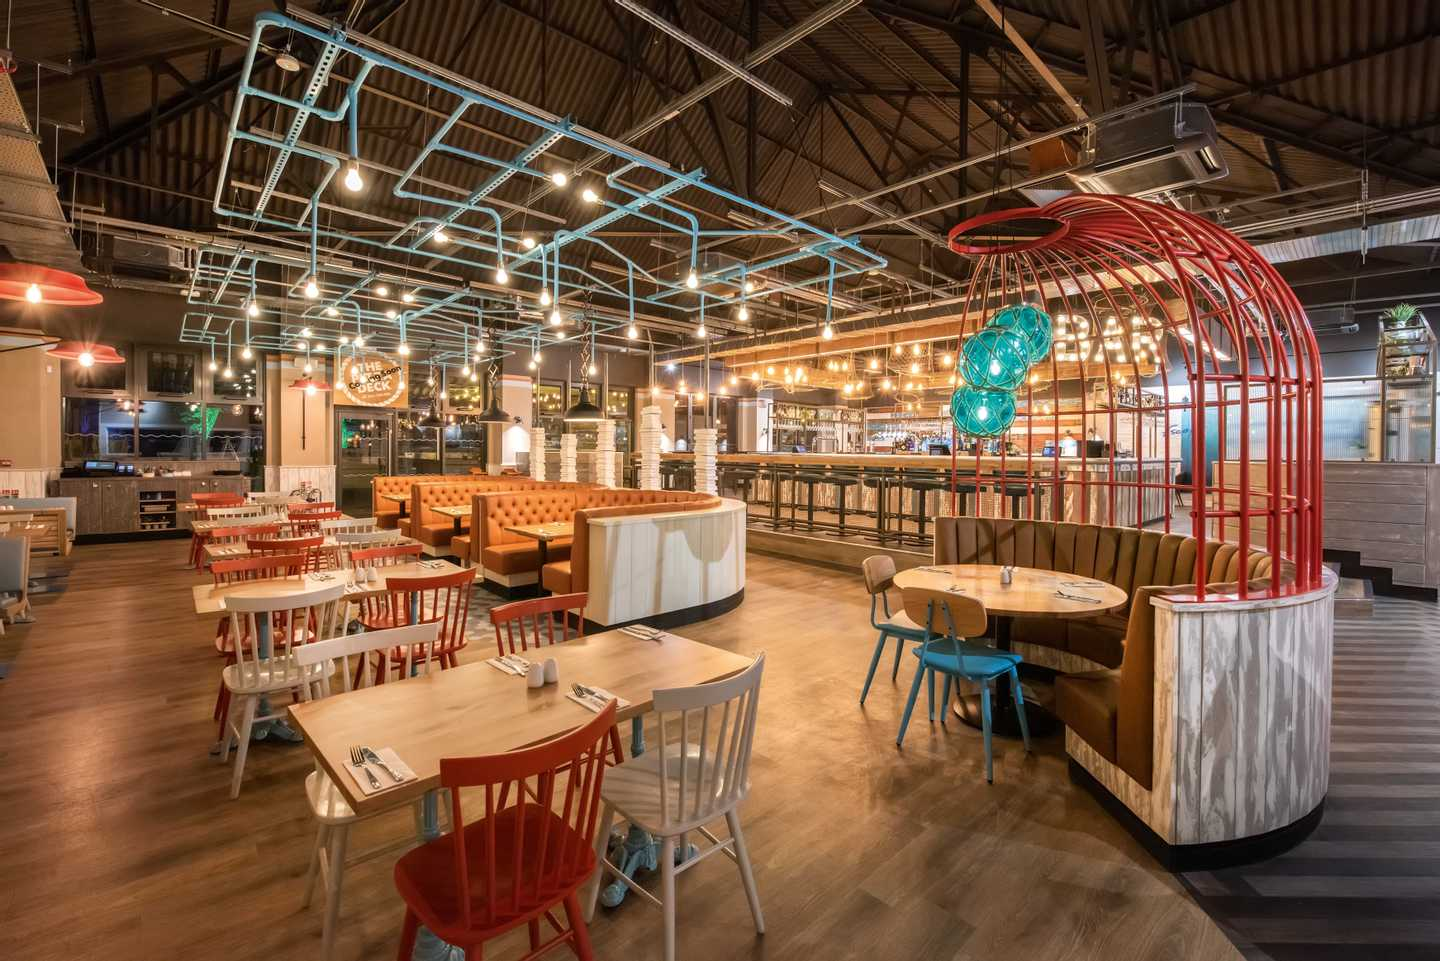 NEW - Coast House bar and grill